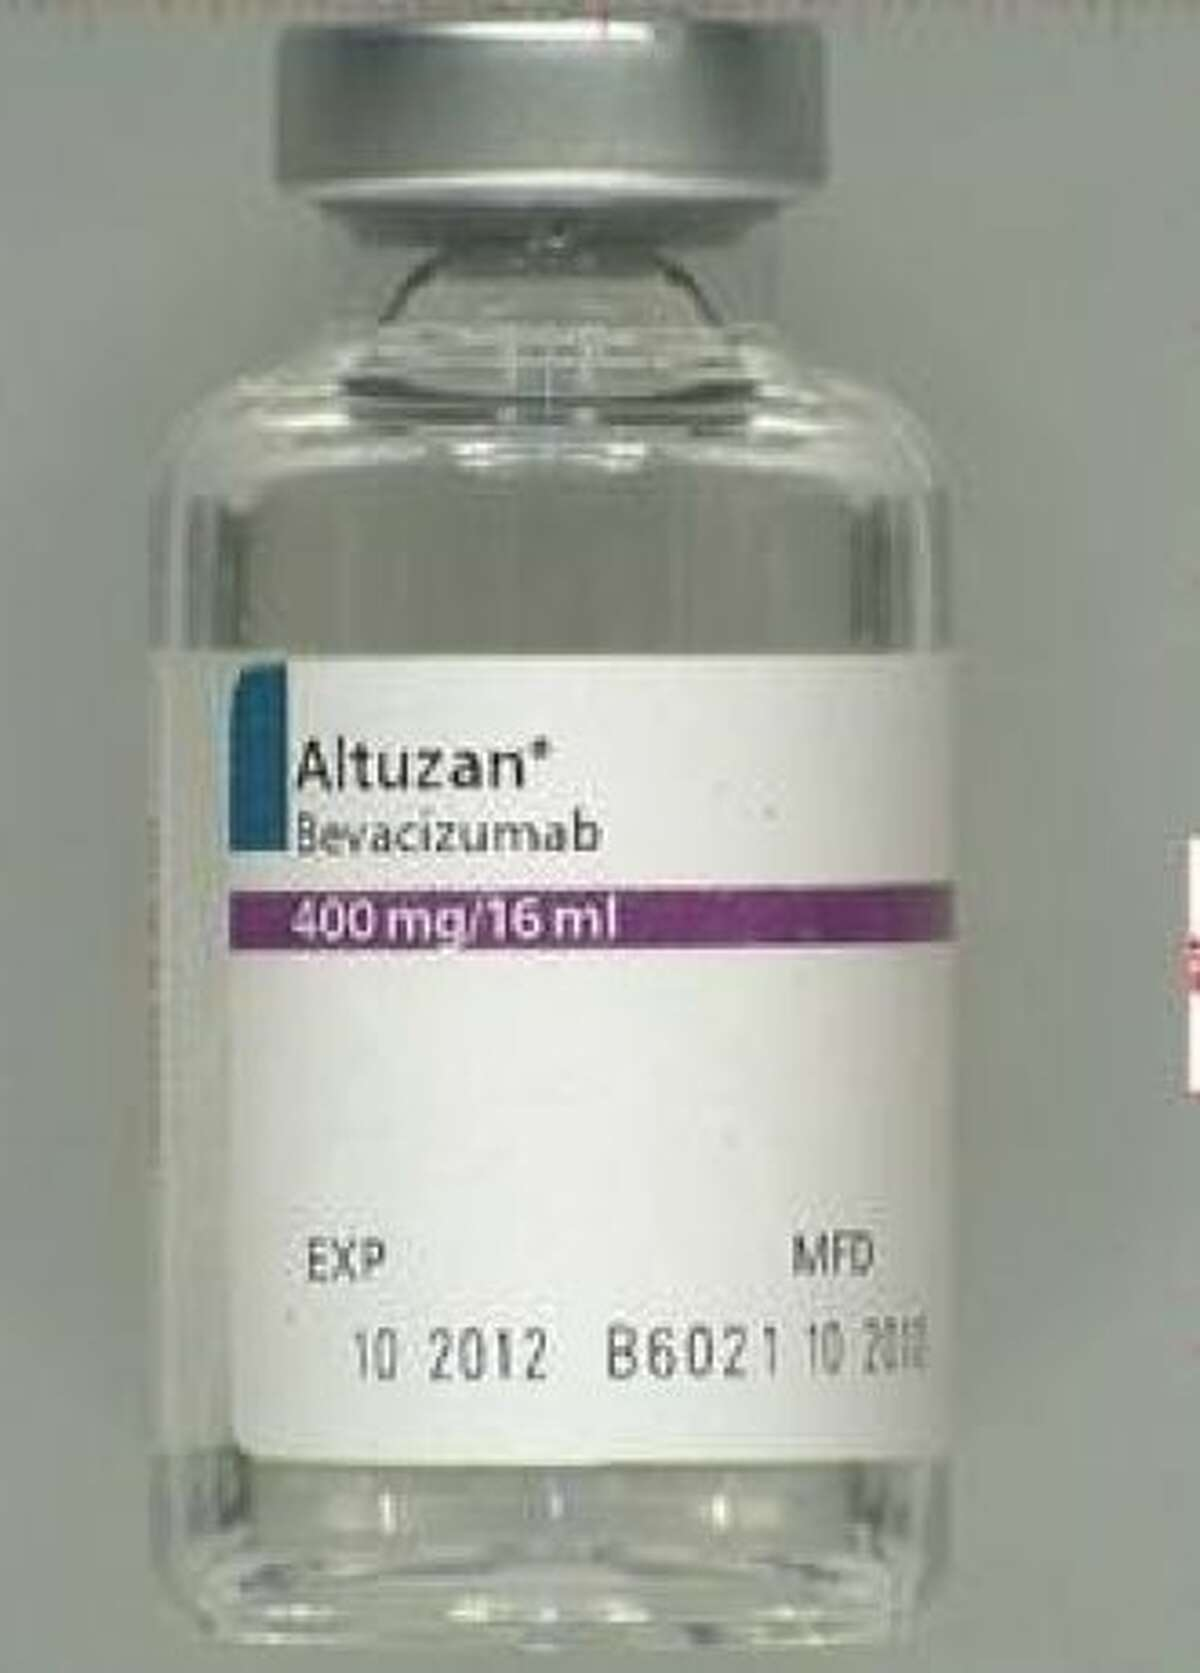 This is a counterfeit version Altuzan, the Turkish brand for Avastin, the U.S Food & Drug Administration officials announced on Tuesday.